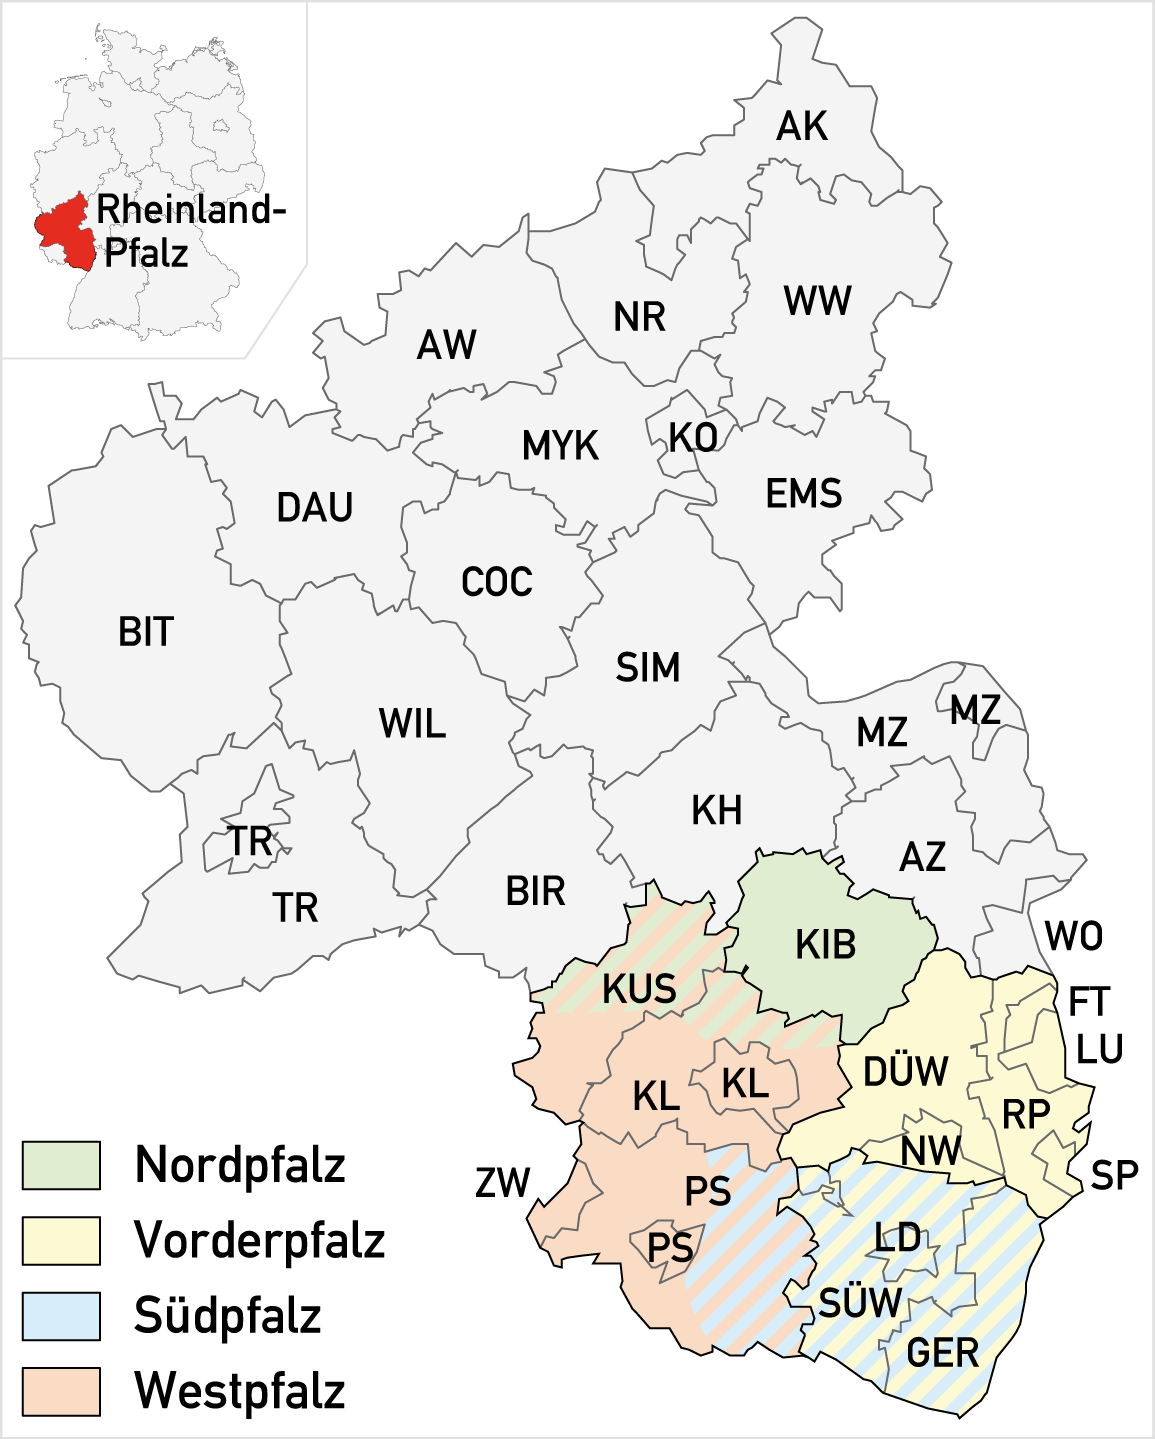 http://upload.wikimedia.org/wikipedia/commons/3/34/Teilbereiche_der_Pfalz.png